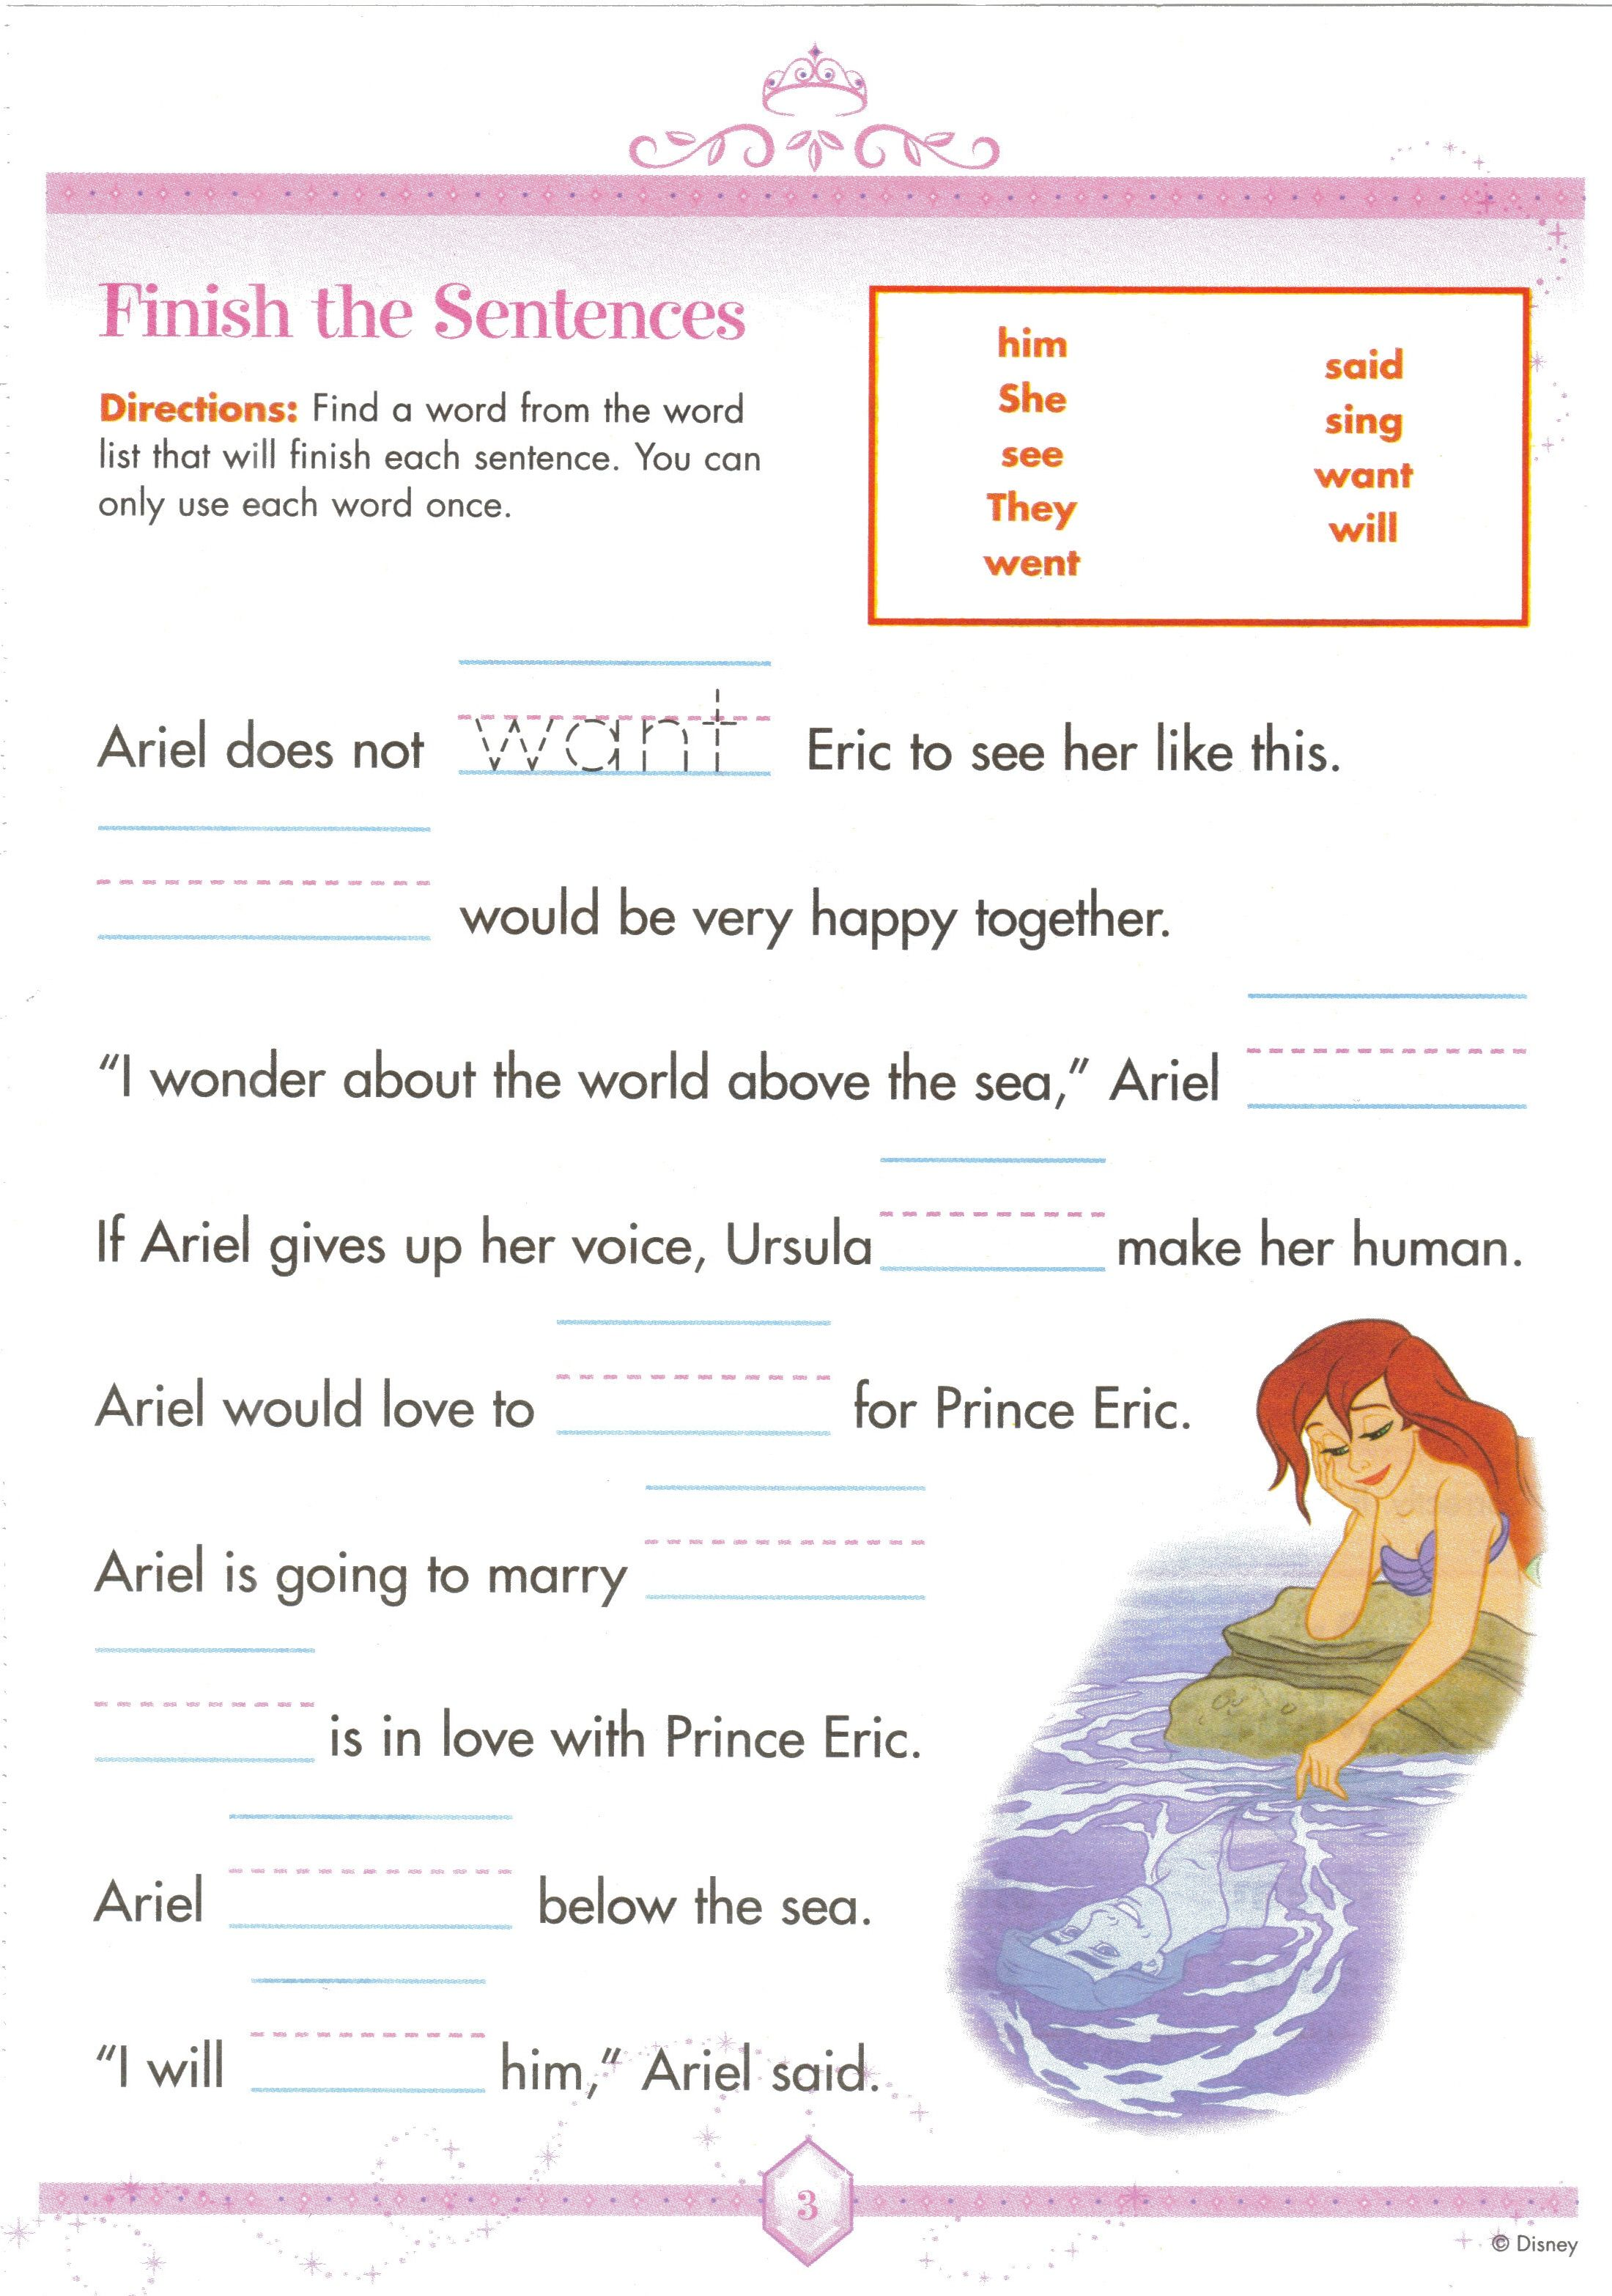 Weirdmailus  Surprising  Images About Worksheets On Pinterest  Fun Facts For Kids  With Lovable  Images About Worksheets On Pinterest  Fun Facts For Kids Earth Day Worksheets And Jungles With Delightful Adjectives Of Quantity Worksheets Also Patterning Worksheets Grade  In Addition French Future Tense Worksheet And Geography Worksheets For Rd Grade As Well As Hibernation Worksheets Kindergarten Additionally Plural Nouns Worksheets St Grade From Pinterestcom With Weirdmailus  Lovable  Images About Worksheets On Pinterest  Fun Facts For Kids  With Delightful  Images About Worksheets On Pinterest  Fun Facts For Kids Earth Day Worksheets And Jungles And Surprising Adjectives Of Quantity Worksheets Also Patterning Worksheets Grade  In Addition French Future Tense Worksheet From Pinterestcom